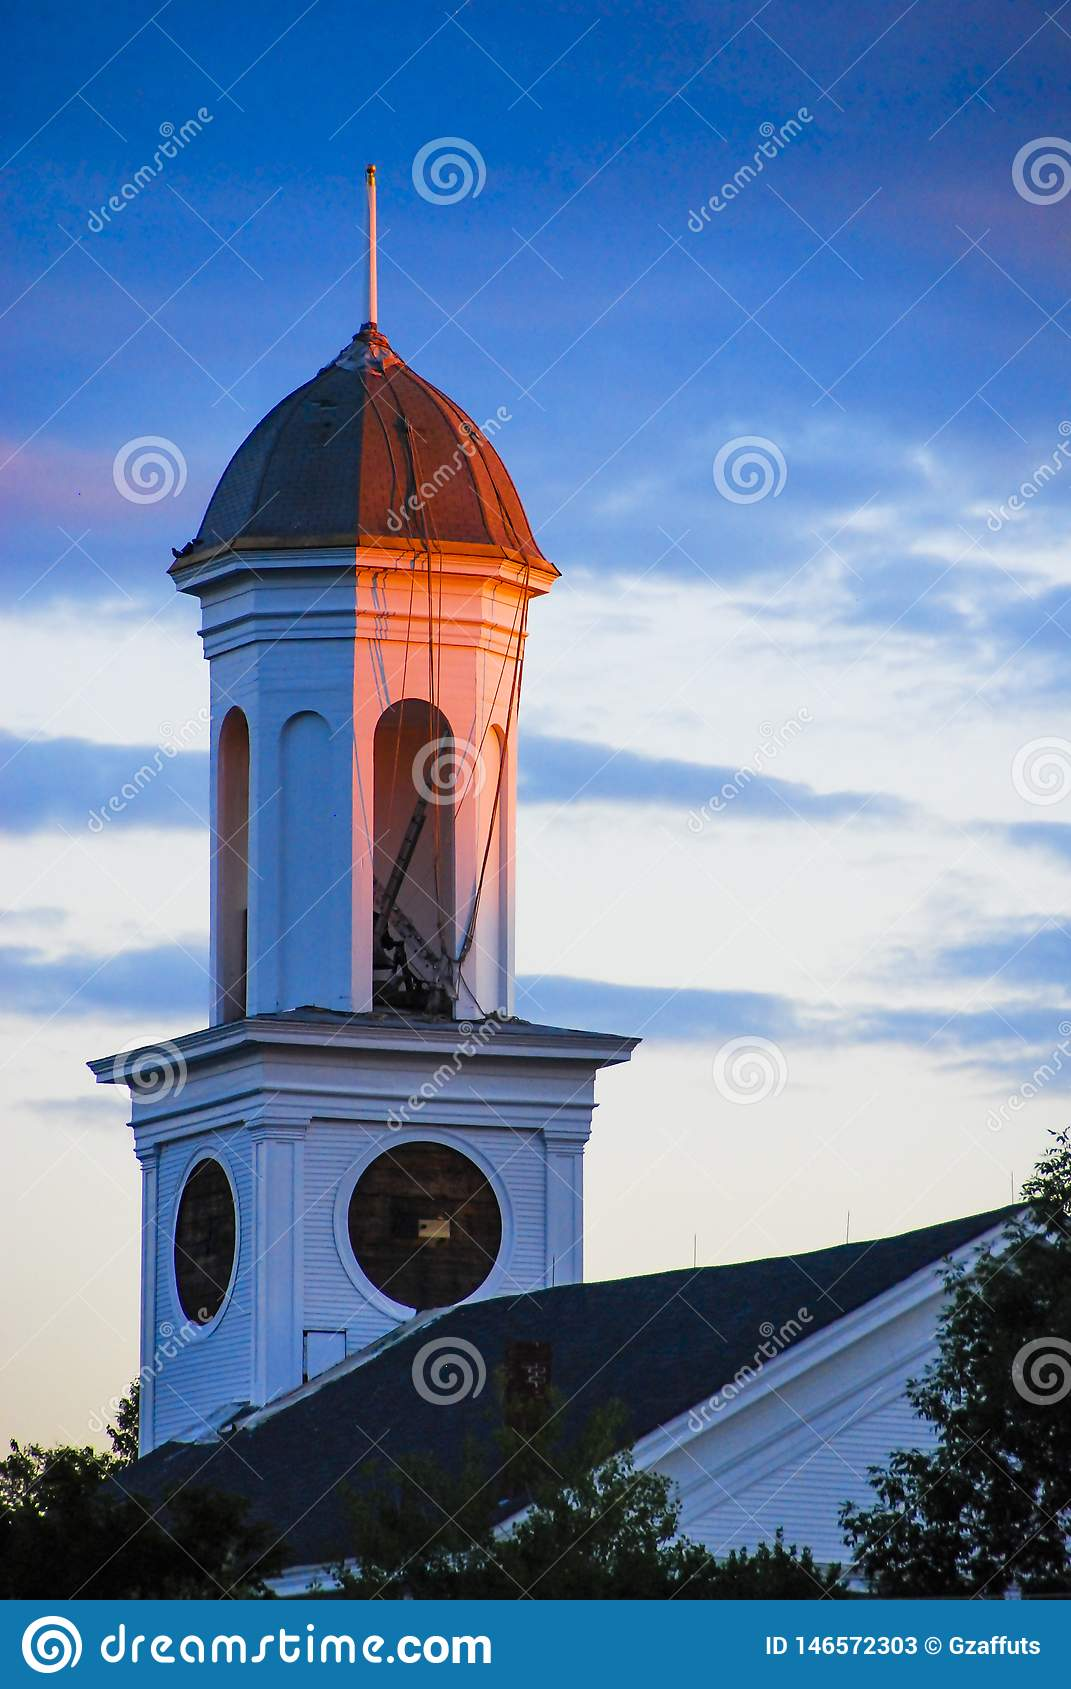 Clock tower at sunset with blue sky and clouds